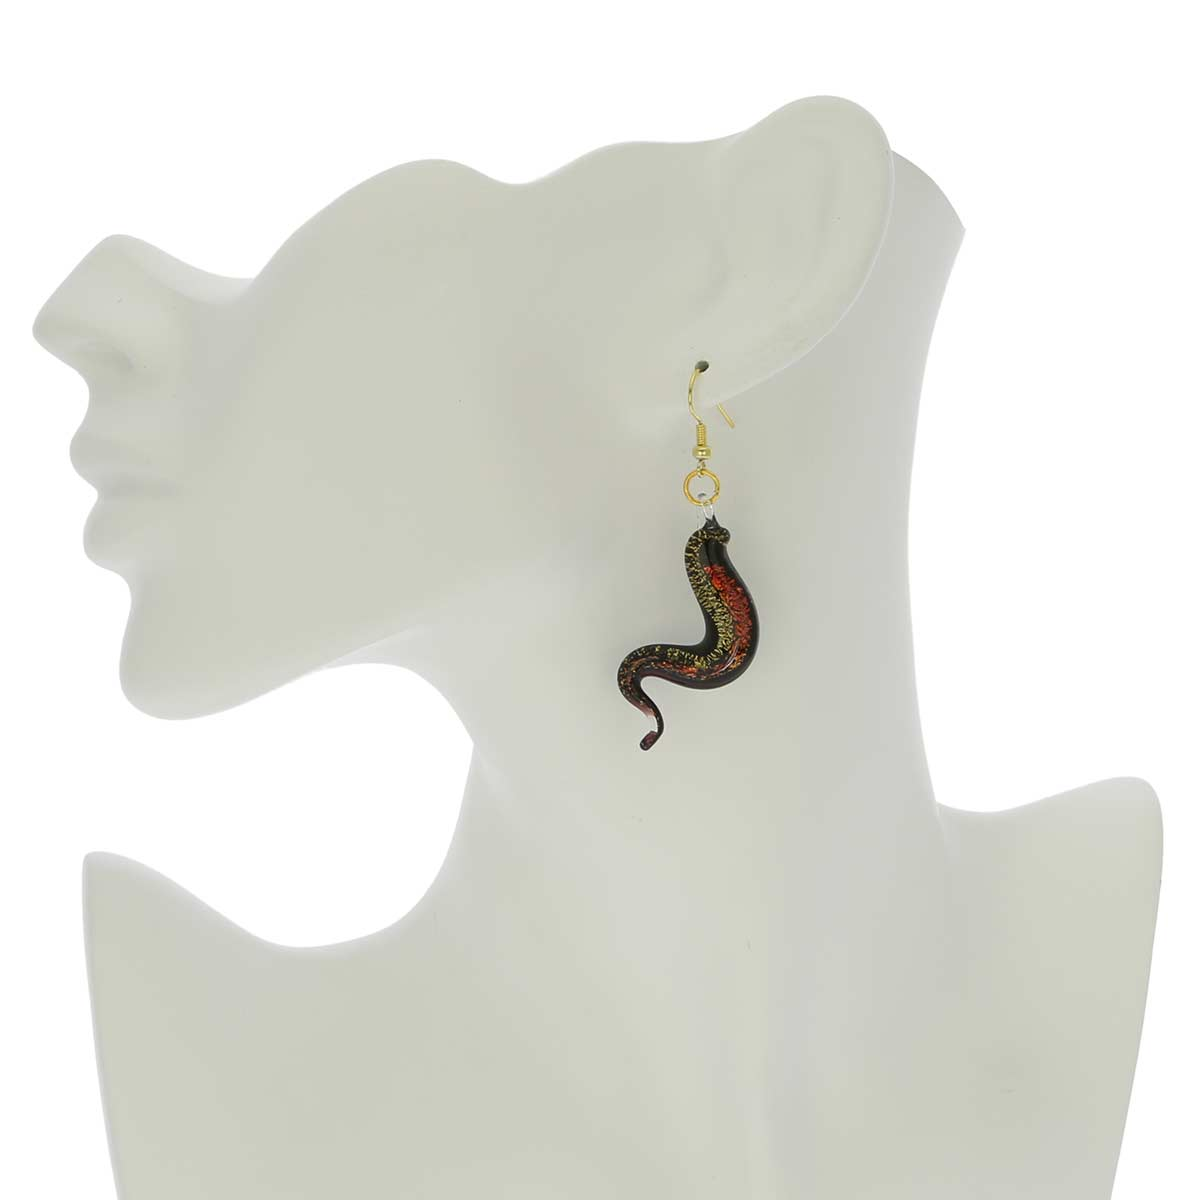 Graceful Snake Earrings